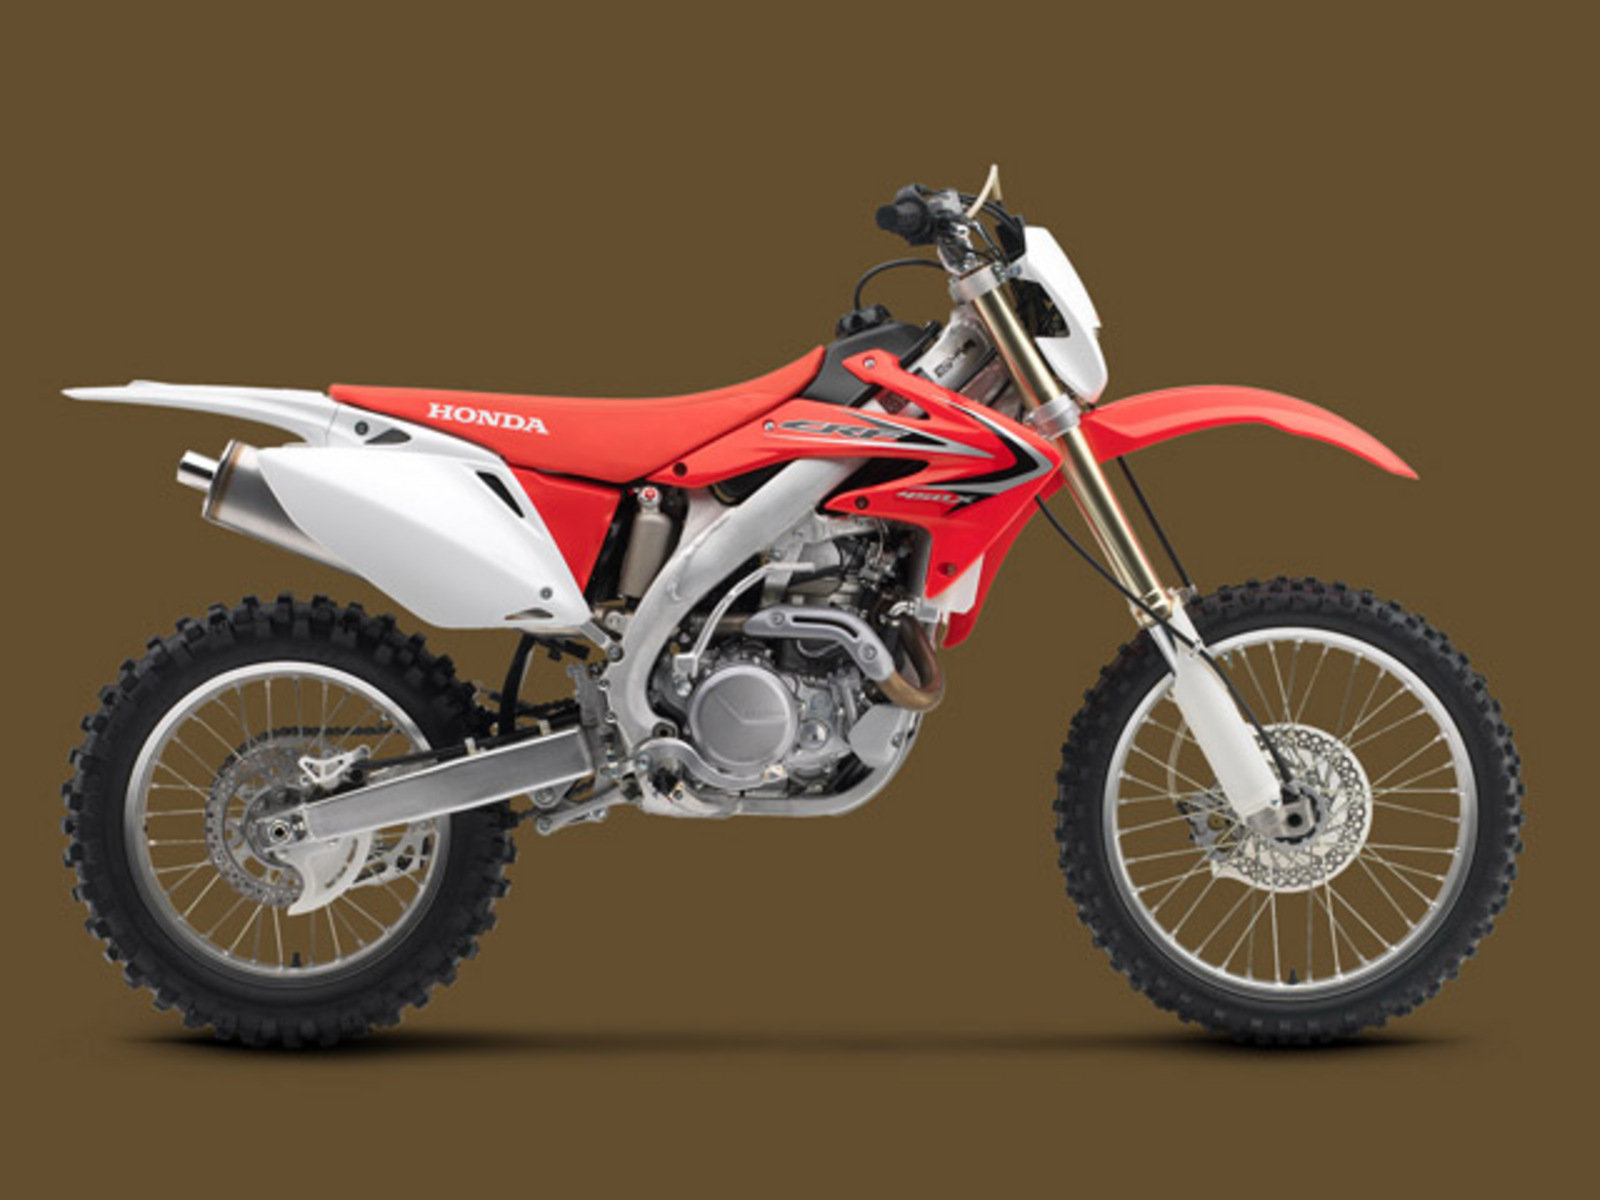 2015 Honda CRF450X Review - Top Speed